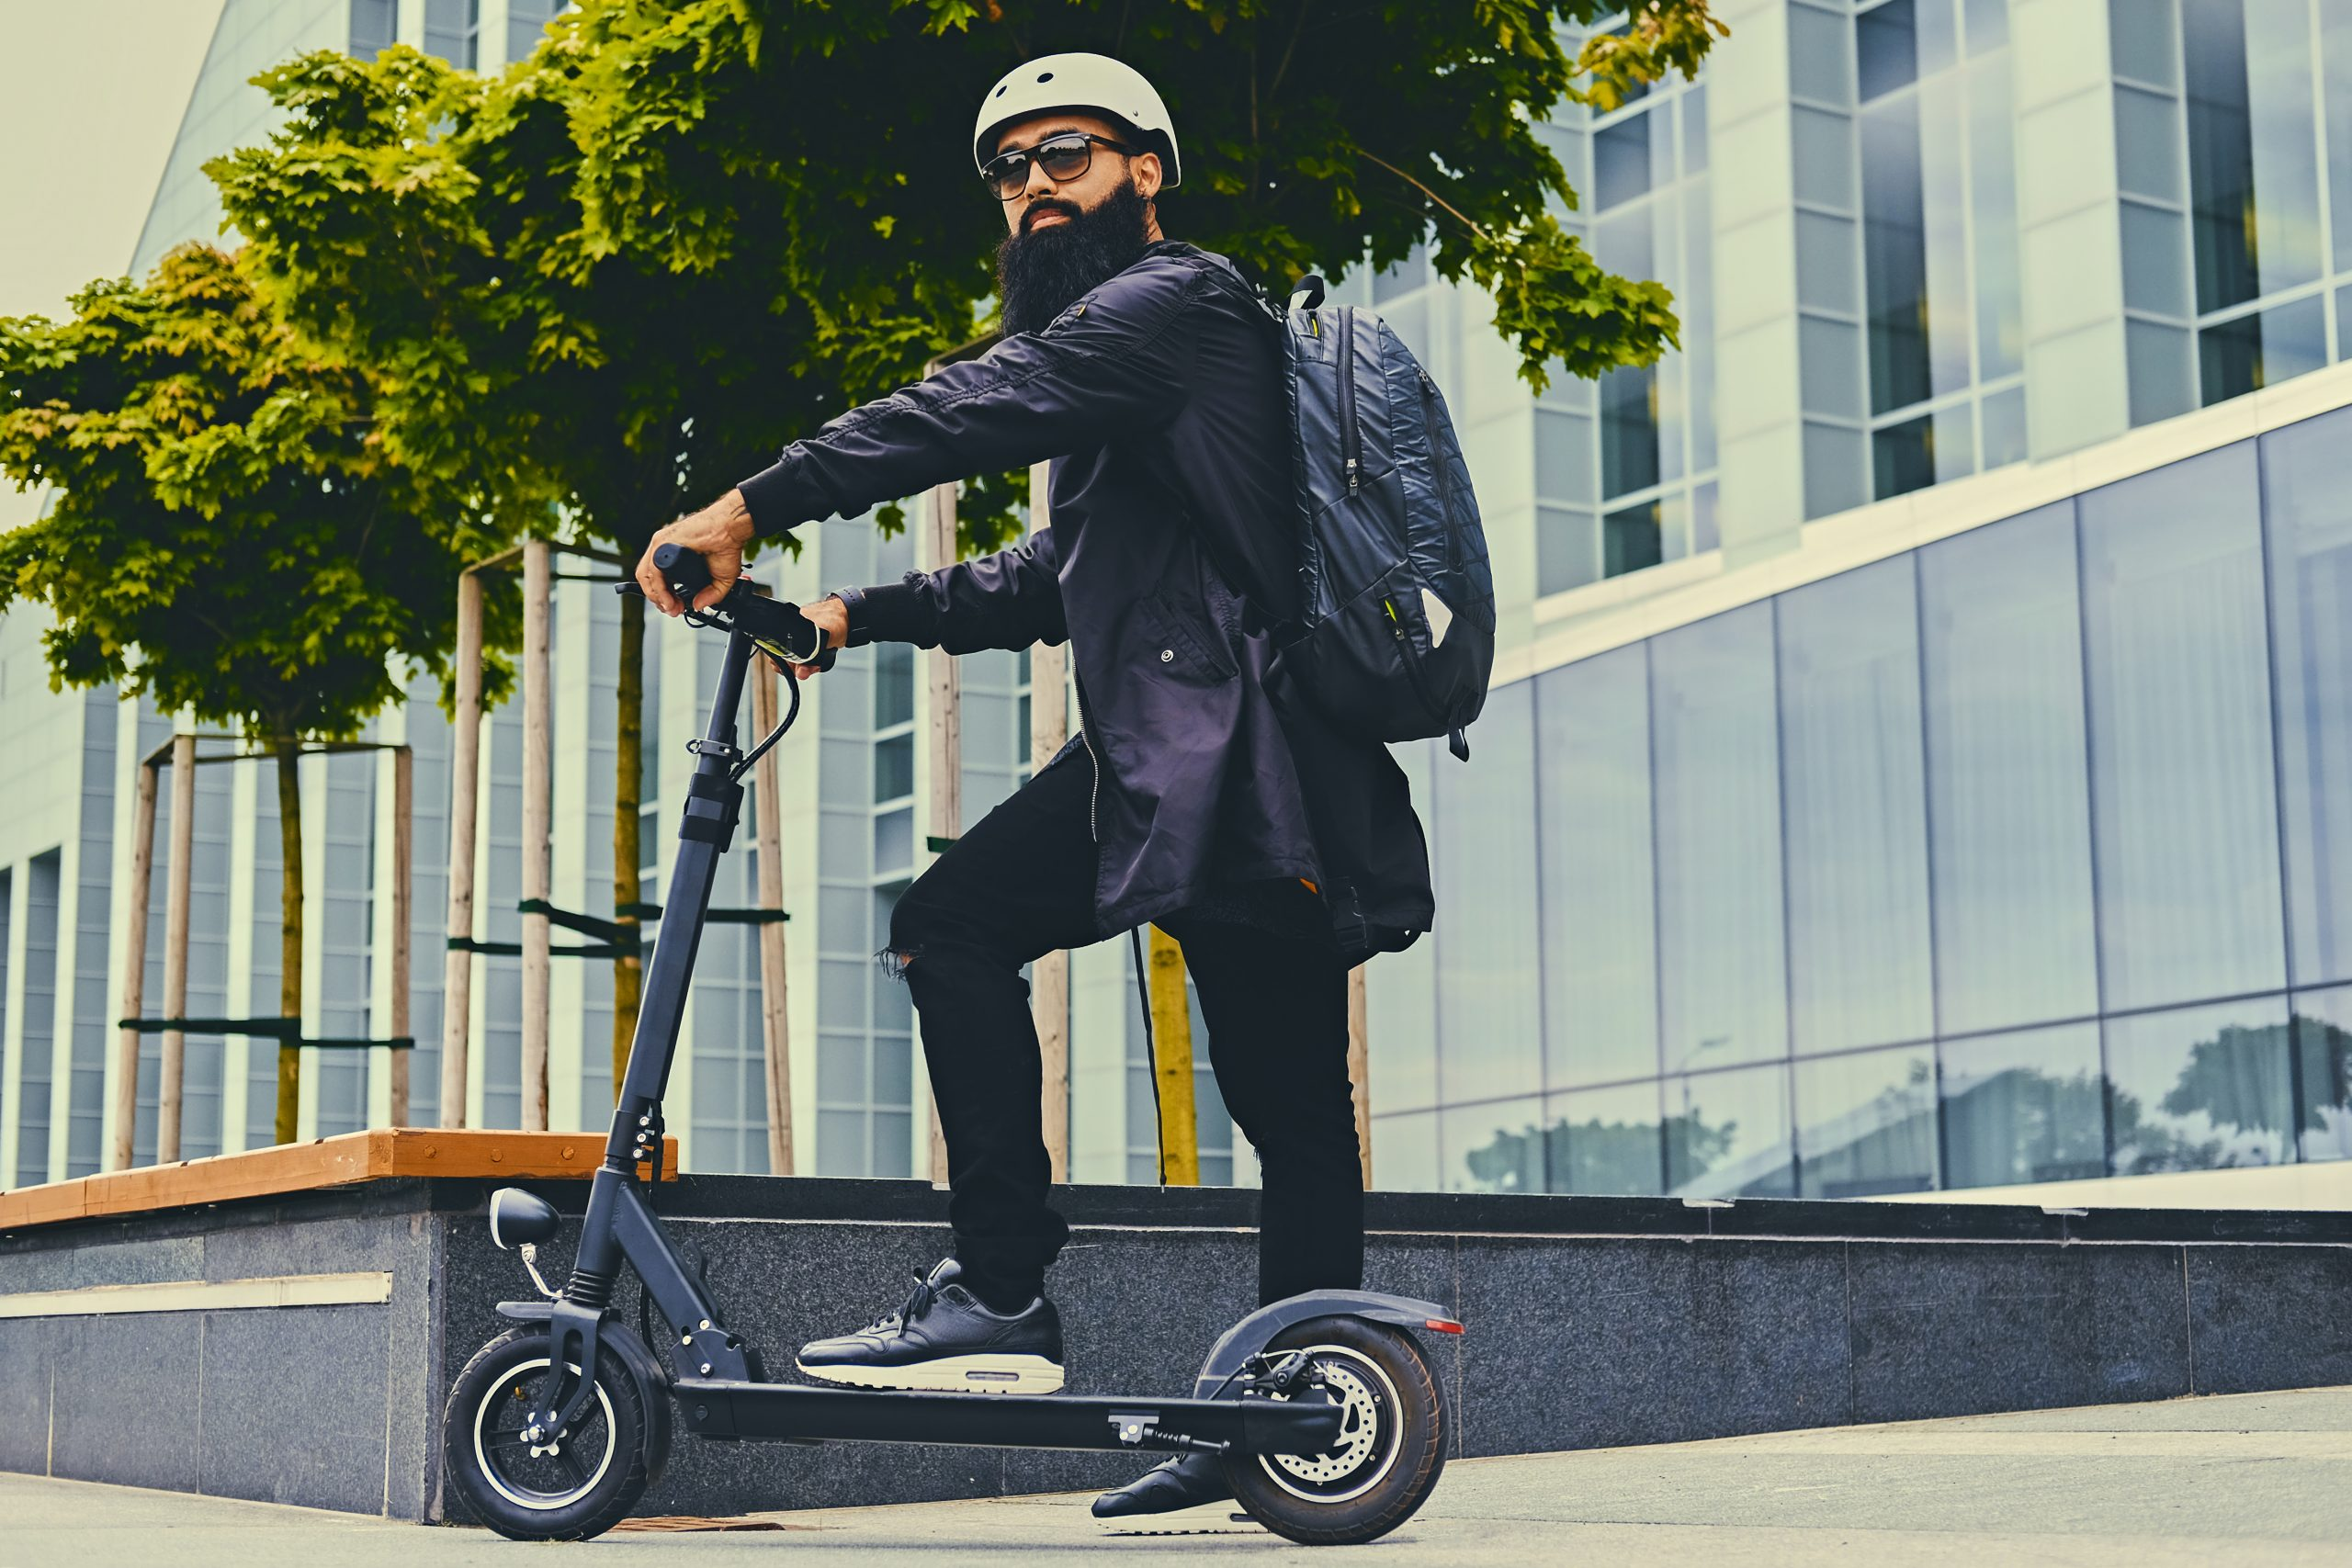 A Man Posing On Electric Scooter.